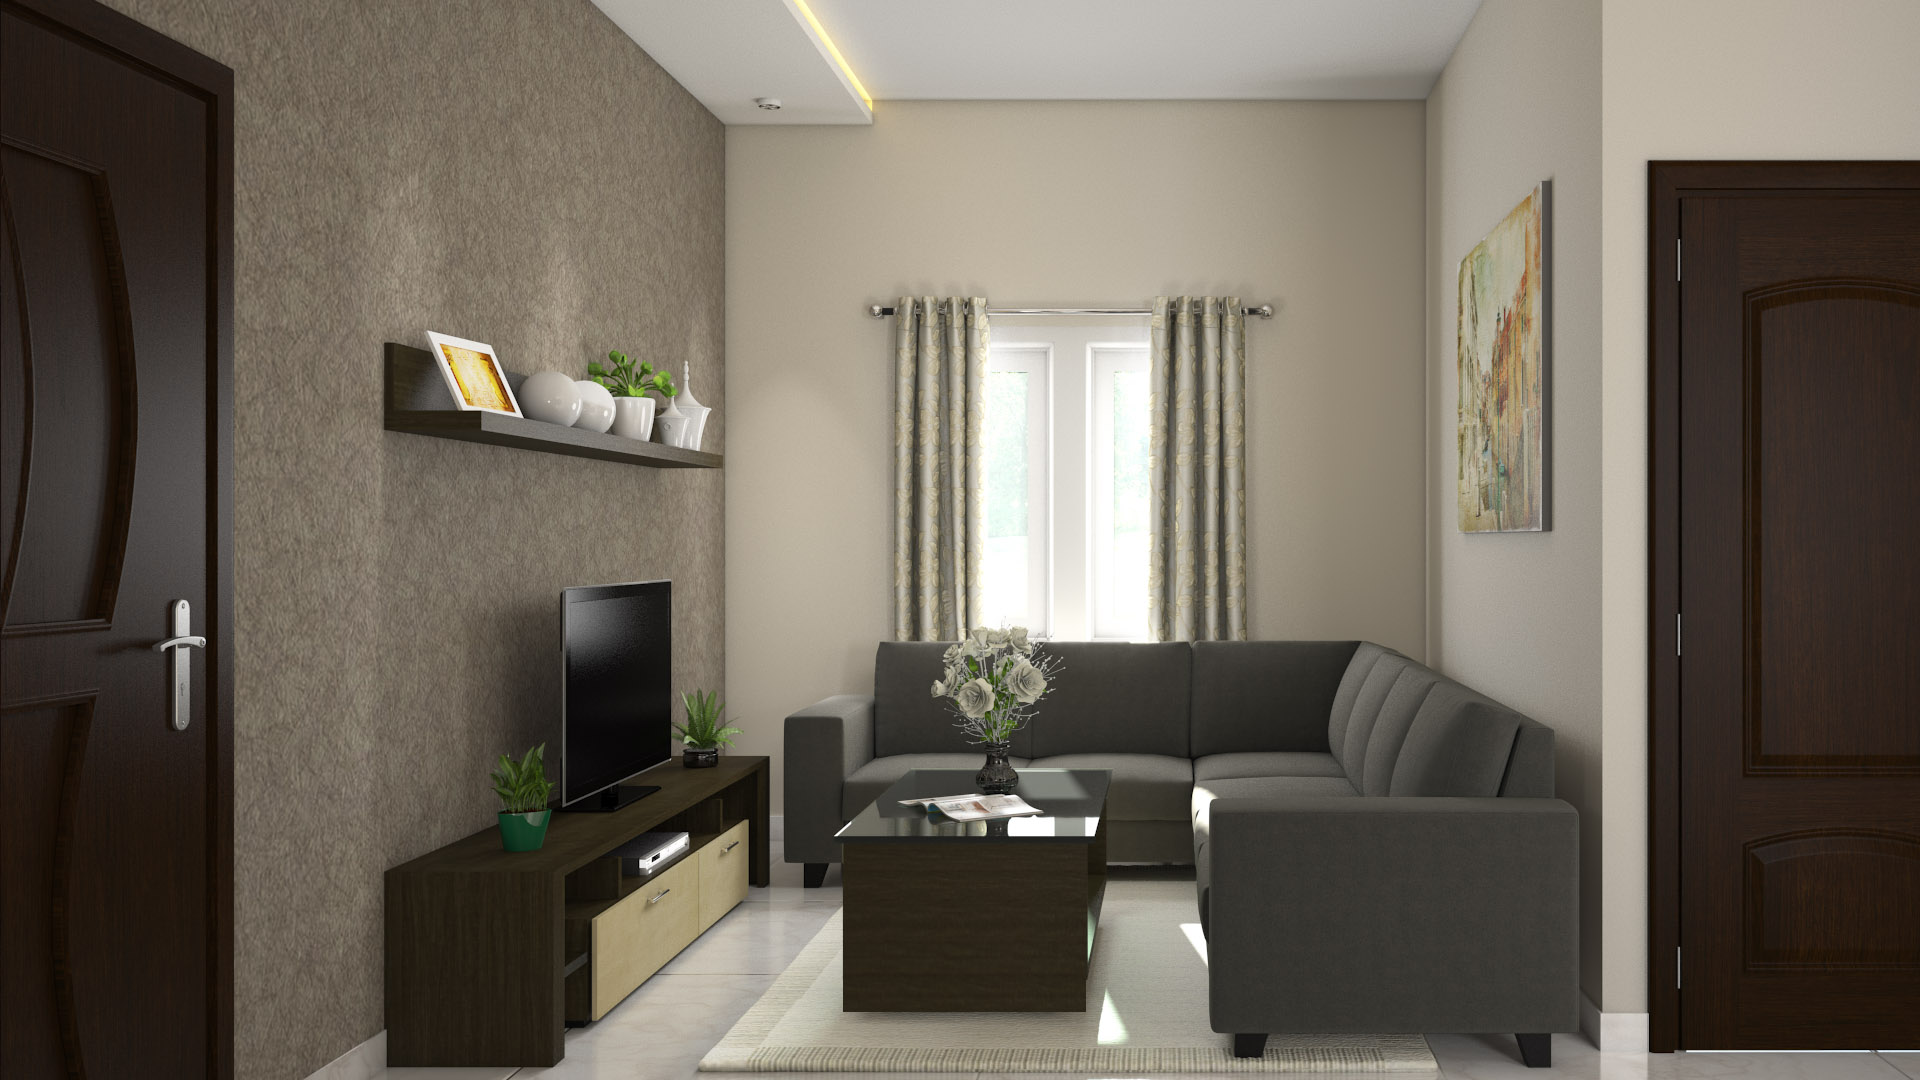 1 Bhk Flat Interior Decoration Image Of Latest Modern Furniture Interior Designs